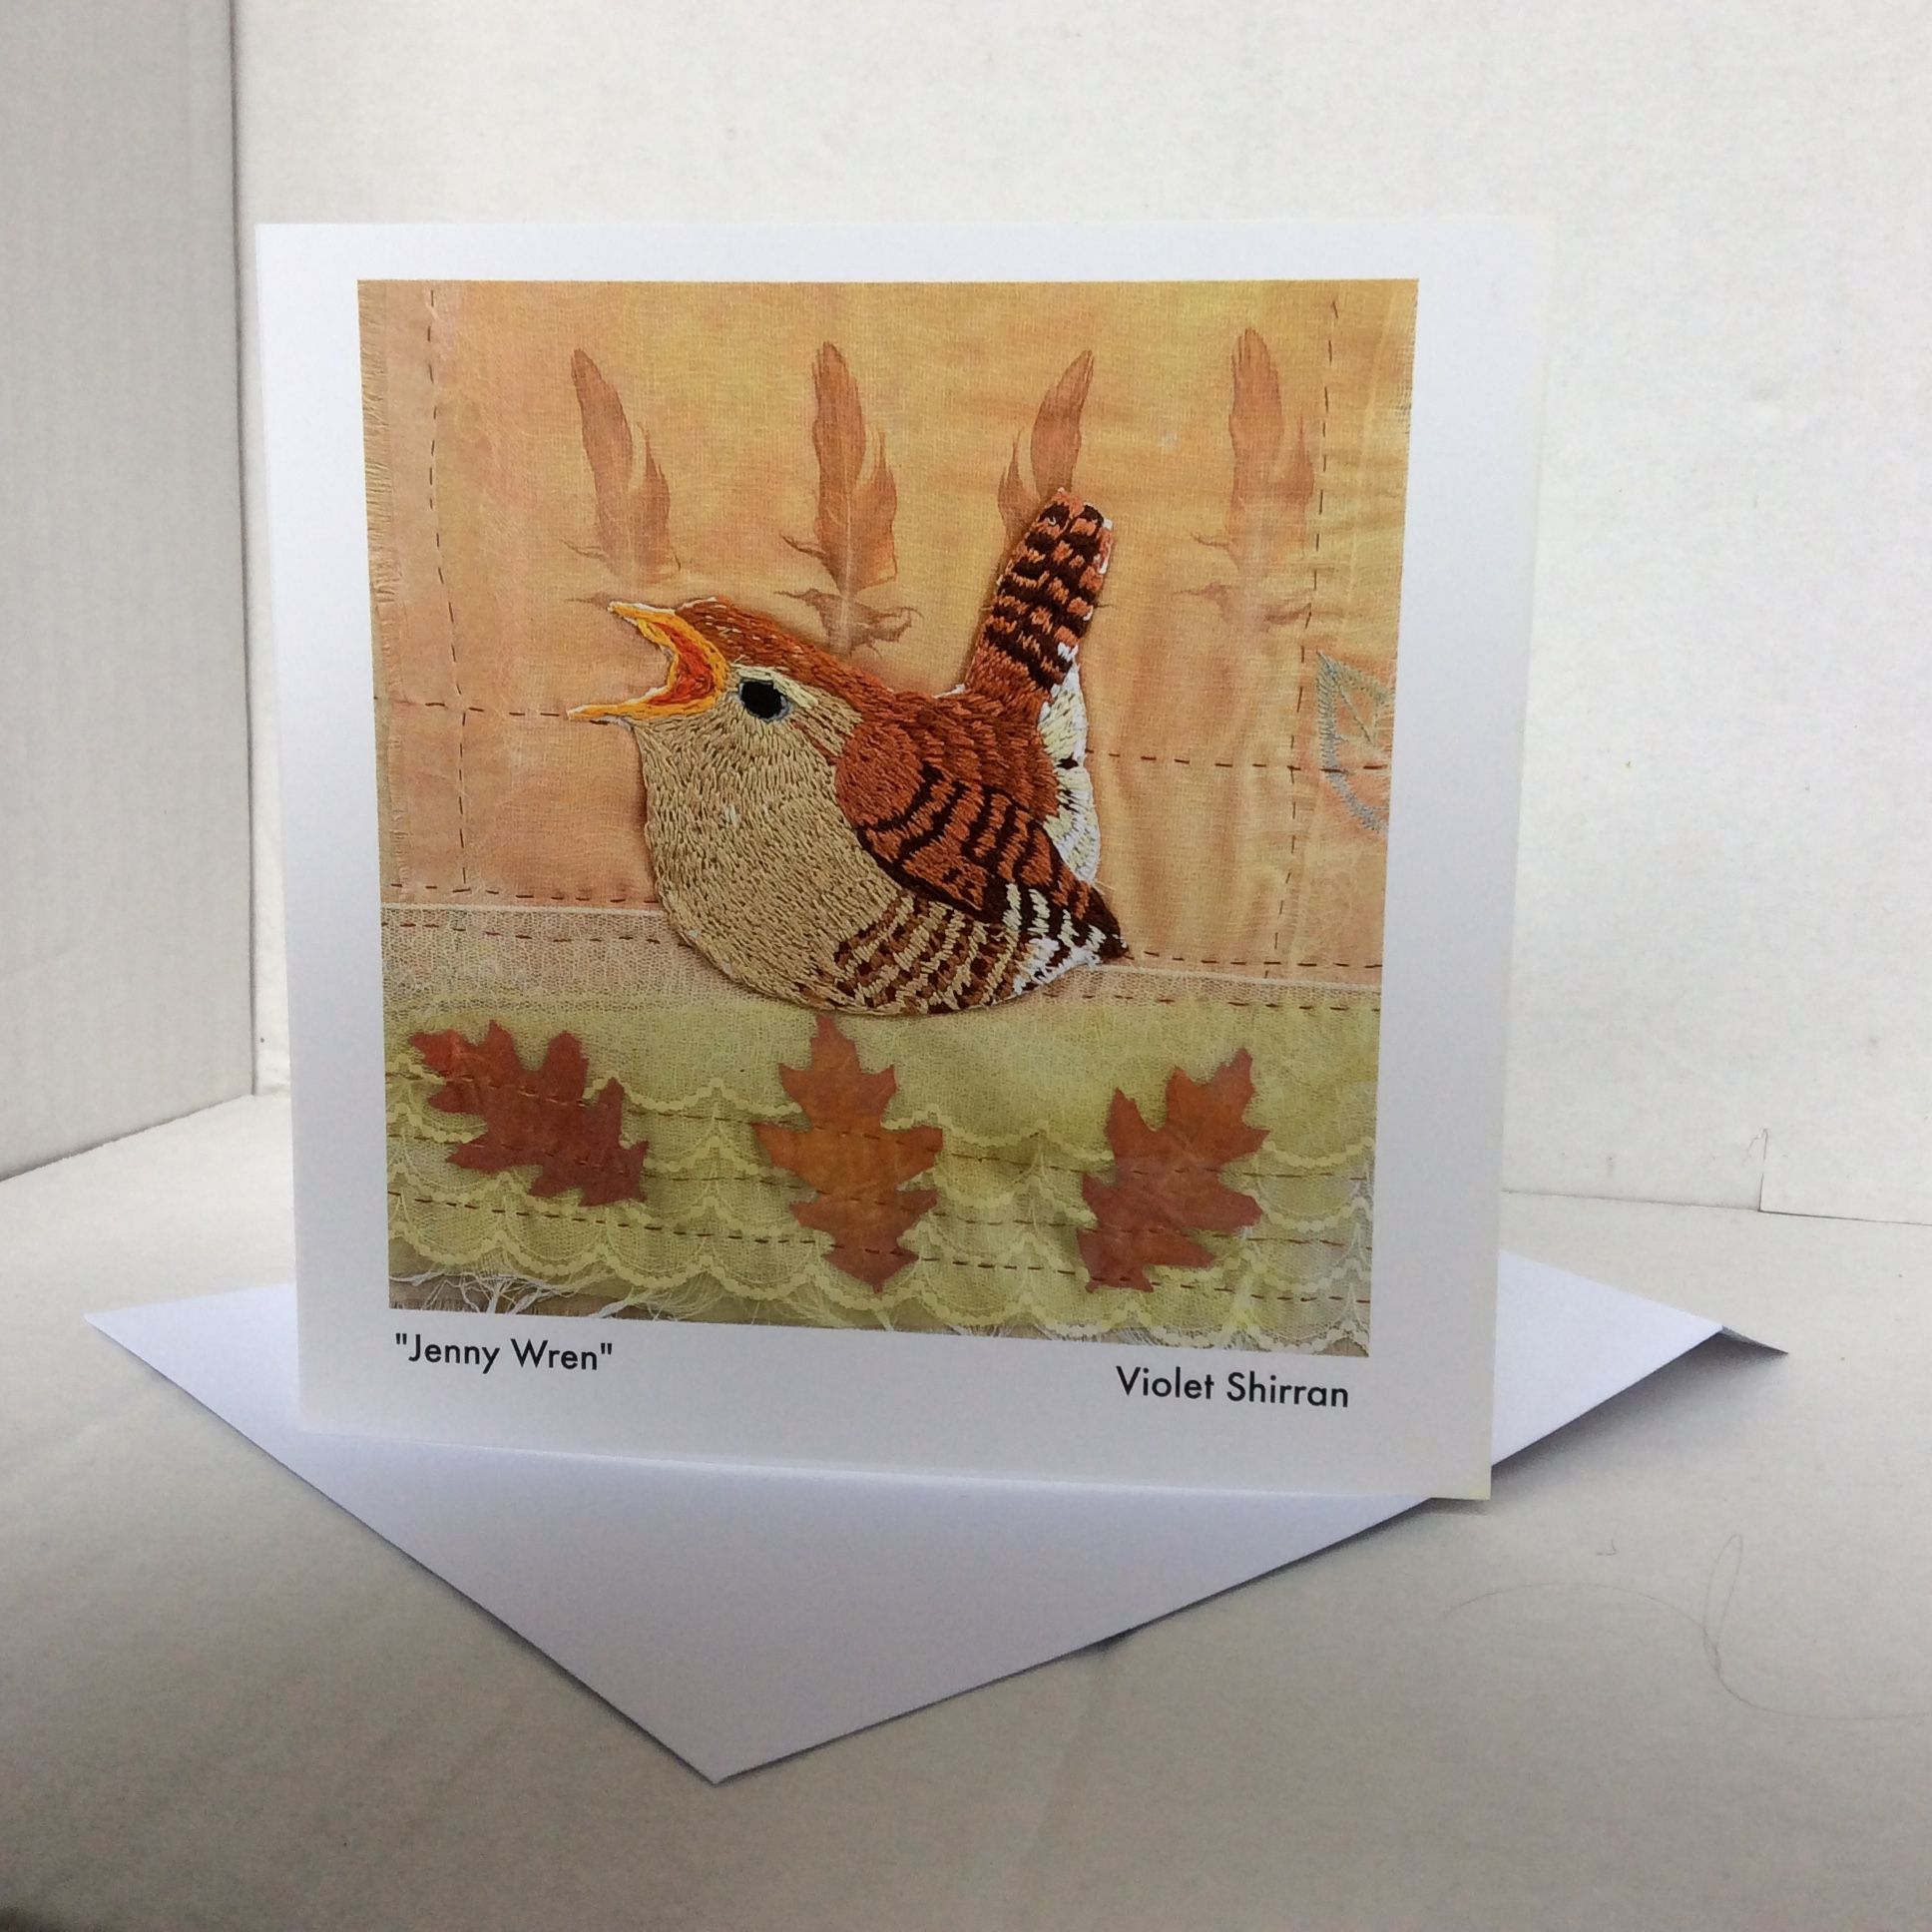 Jenny wren greeting cards hand embroidery irish bird series greeting cards hand embroidery irish bird series violetshirran kristyandbryce Image collections